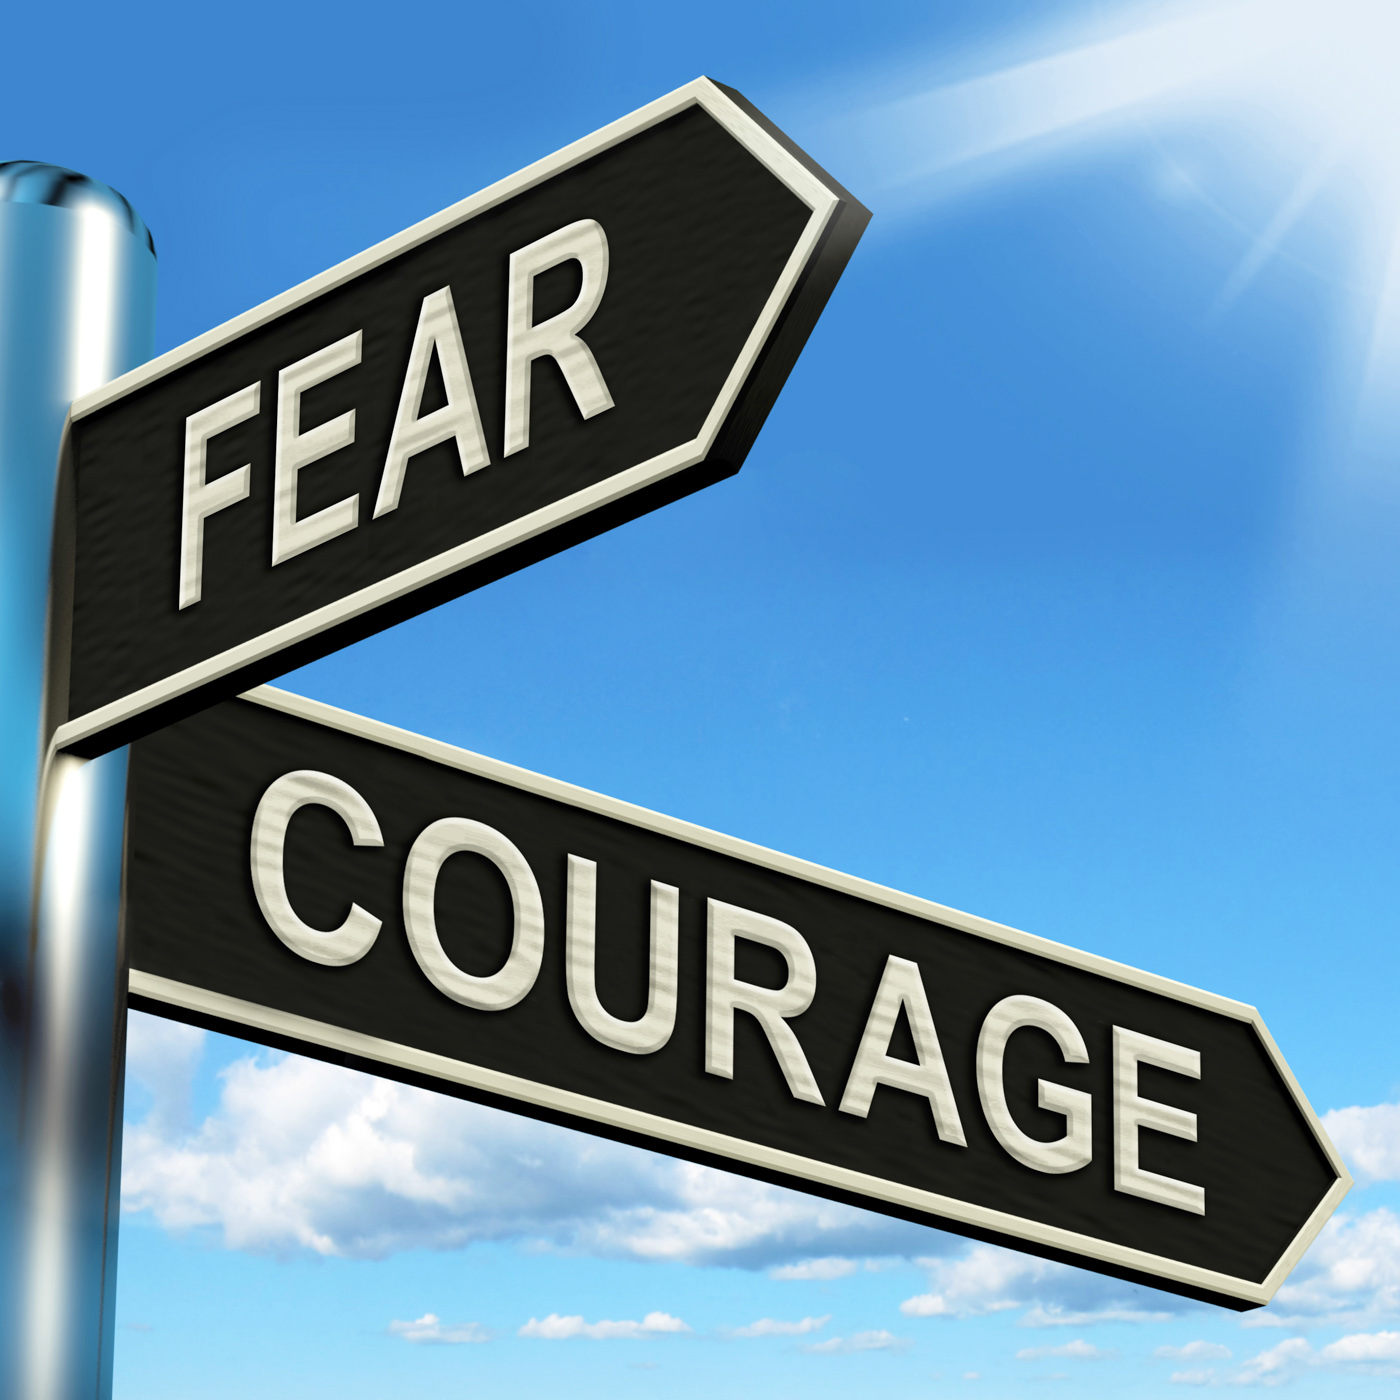 Fear Courage Signpost Shows Scared Or Courageous, Afraid, Anxious, Brave, Bravery, HQ Photo